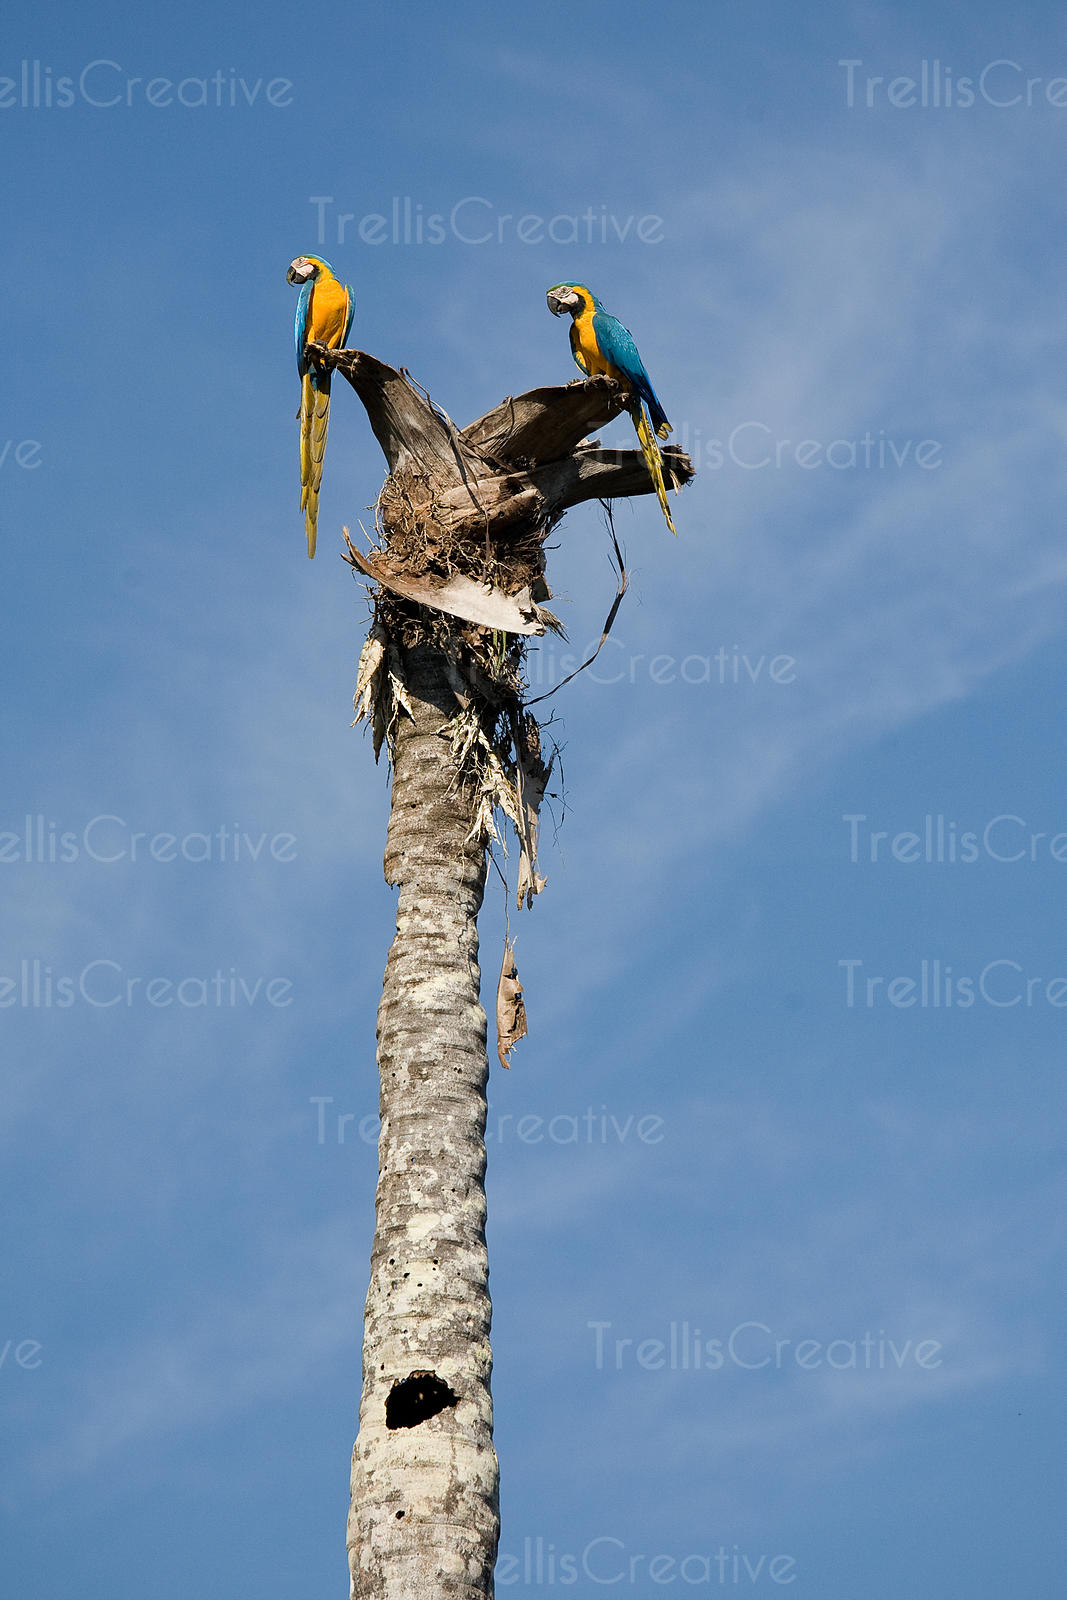 Macaw parrots mate for life and make their homes in hollow palm trees